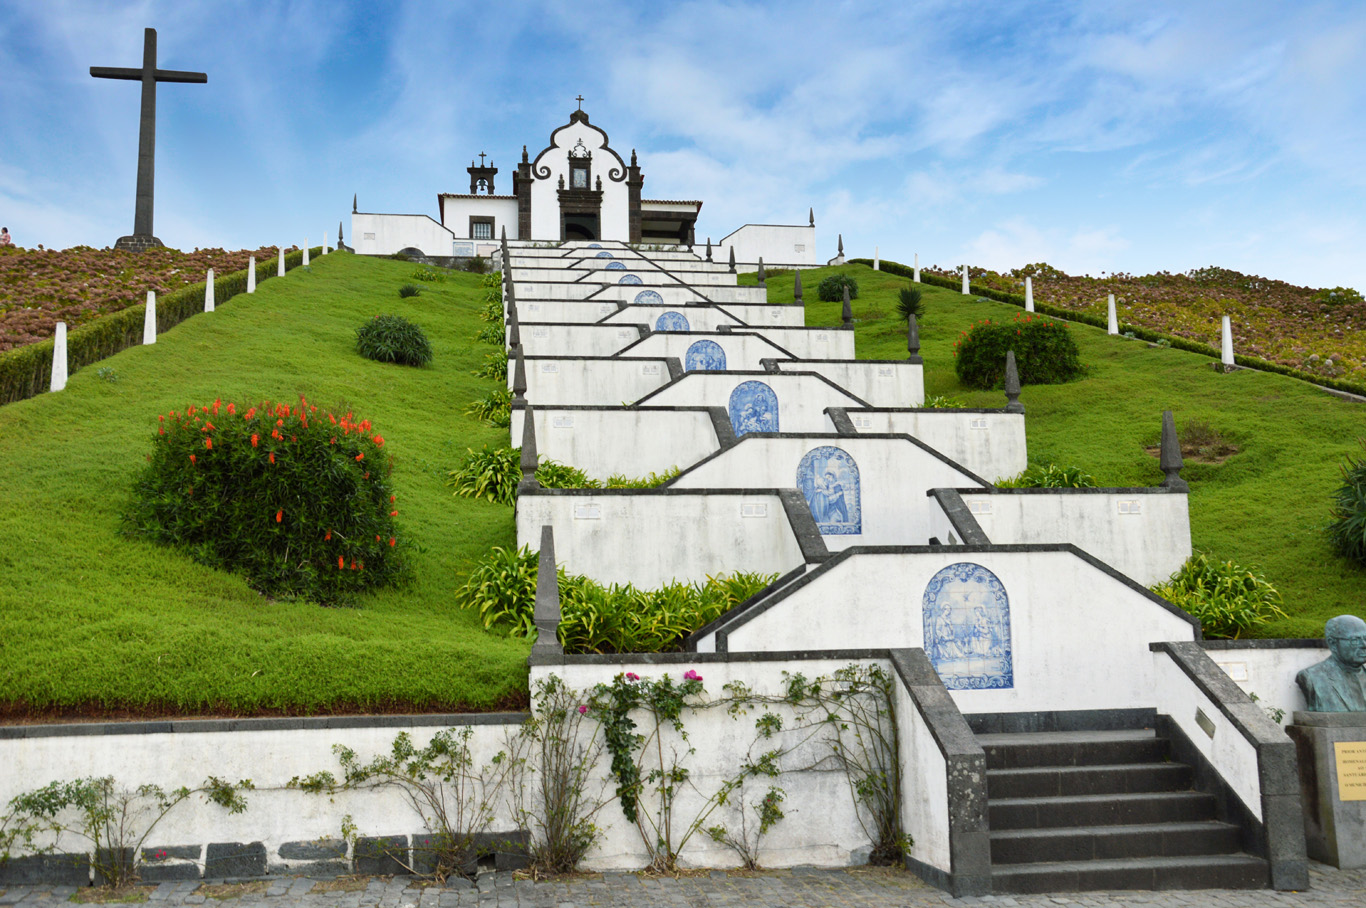 Shrine of Senhora da Paz